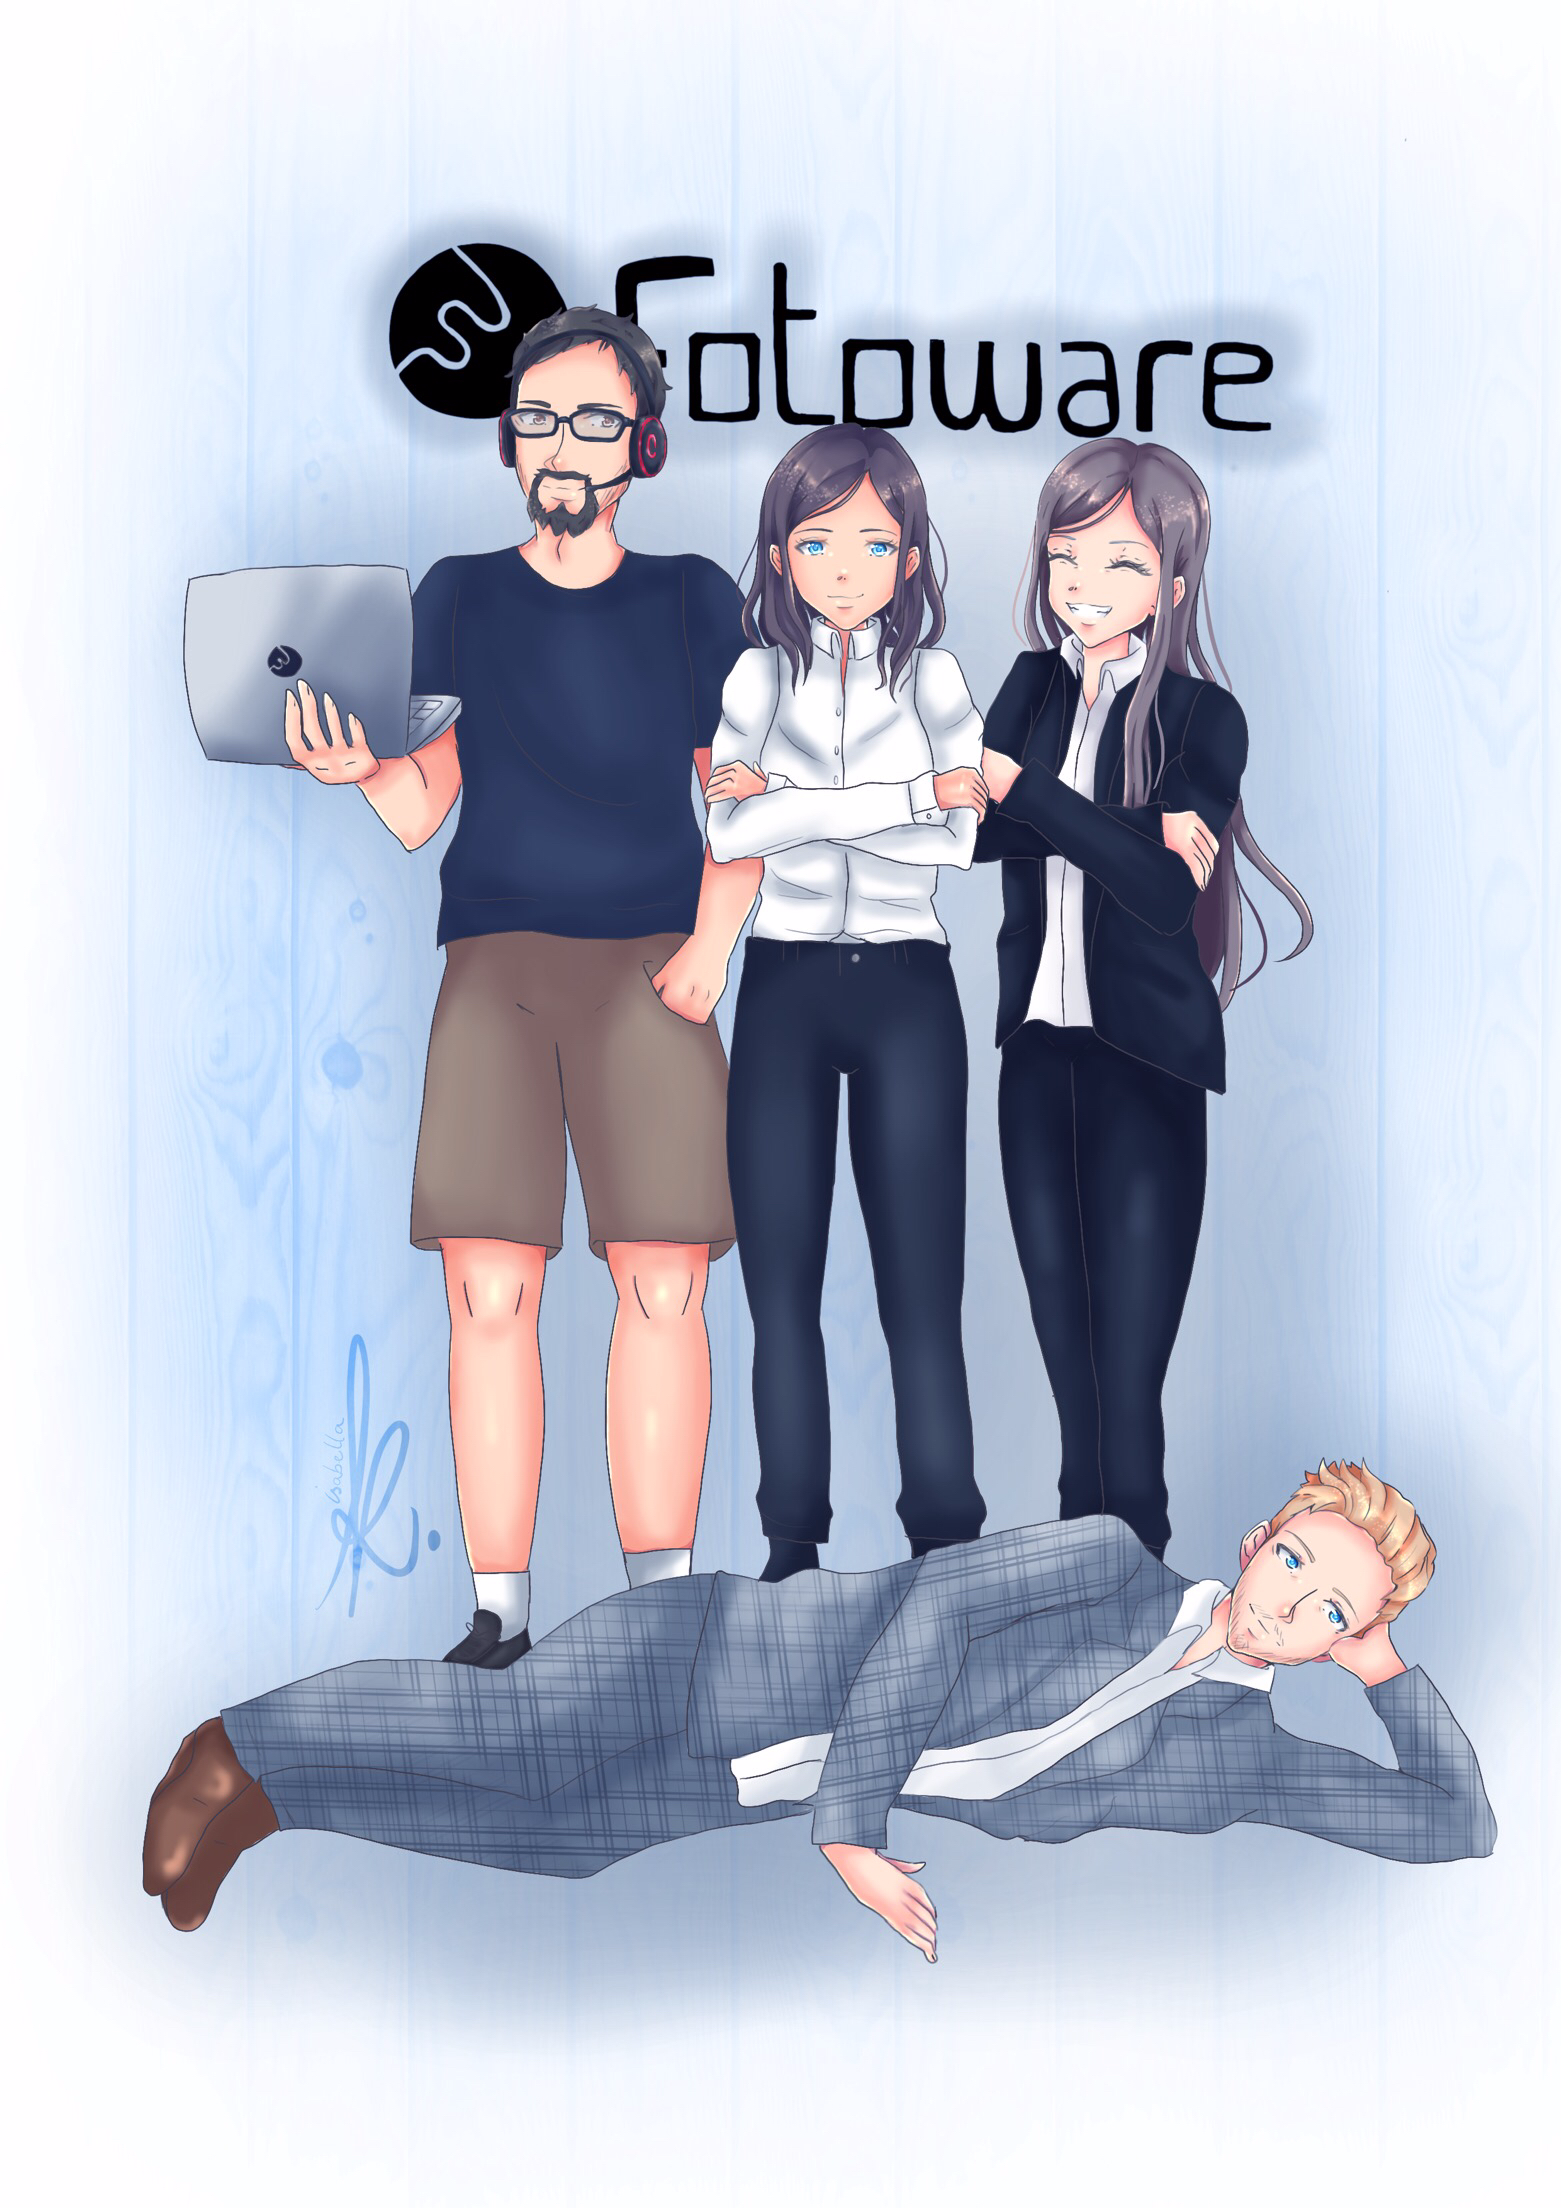 Isabella's drawing of some of the FotoWare team